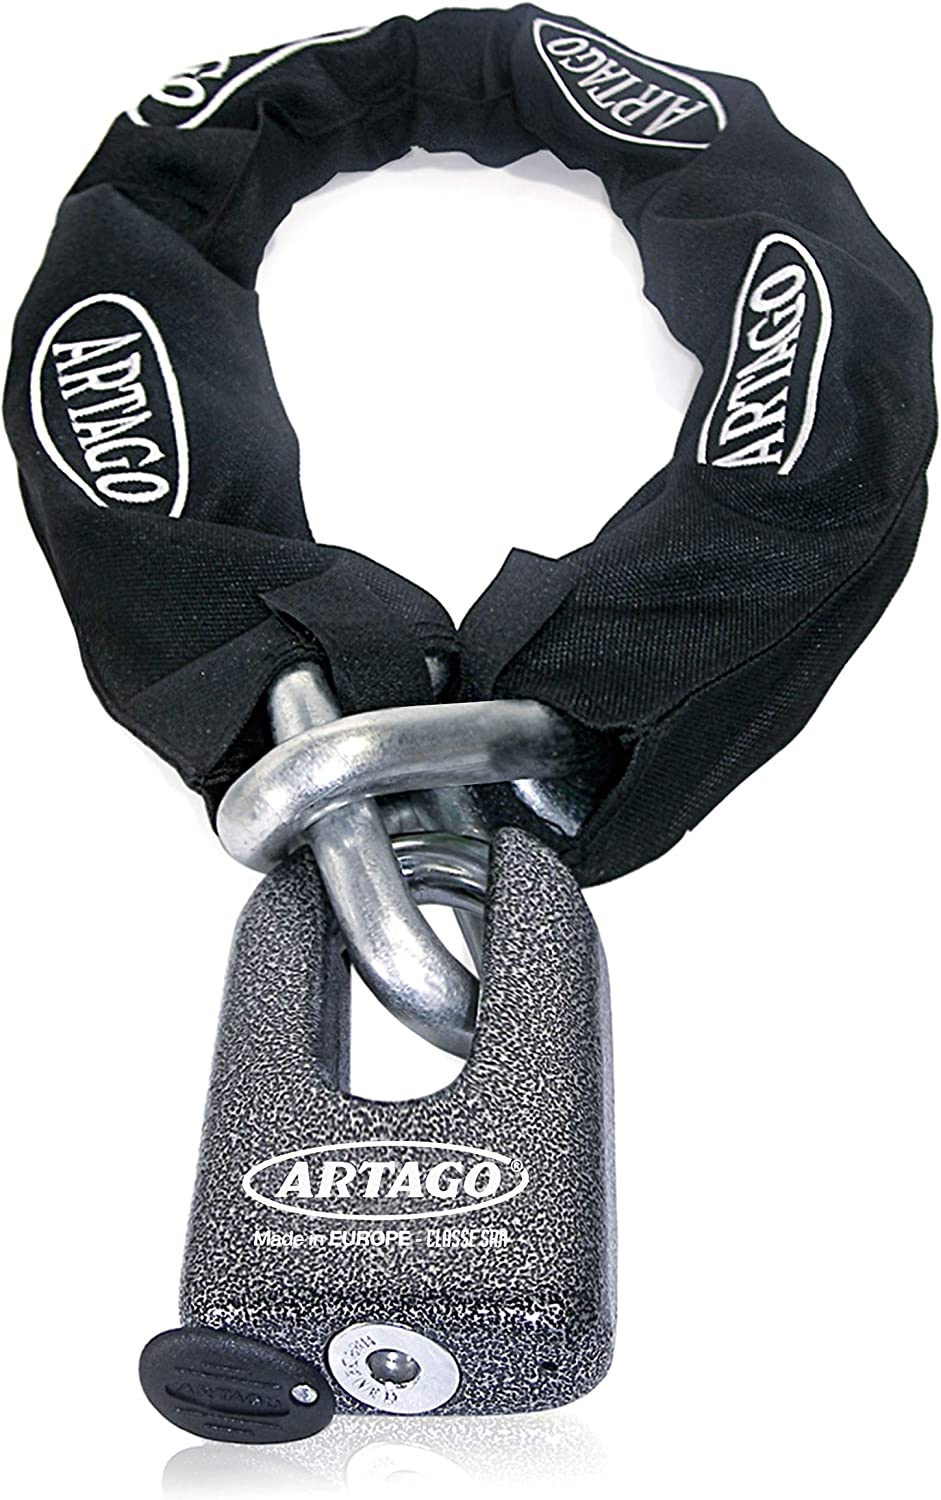 Diameter 14.5 100 cm Artago 69T100 Chain Anti-Theft Maximum Security Double Function Approved SRA Sold Secure Gold